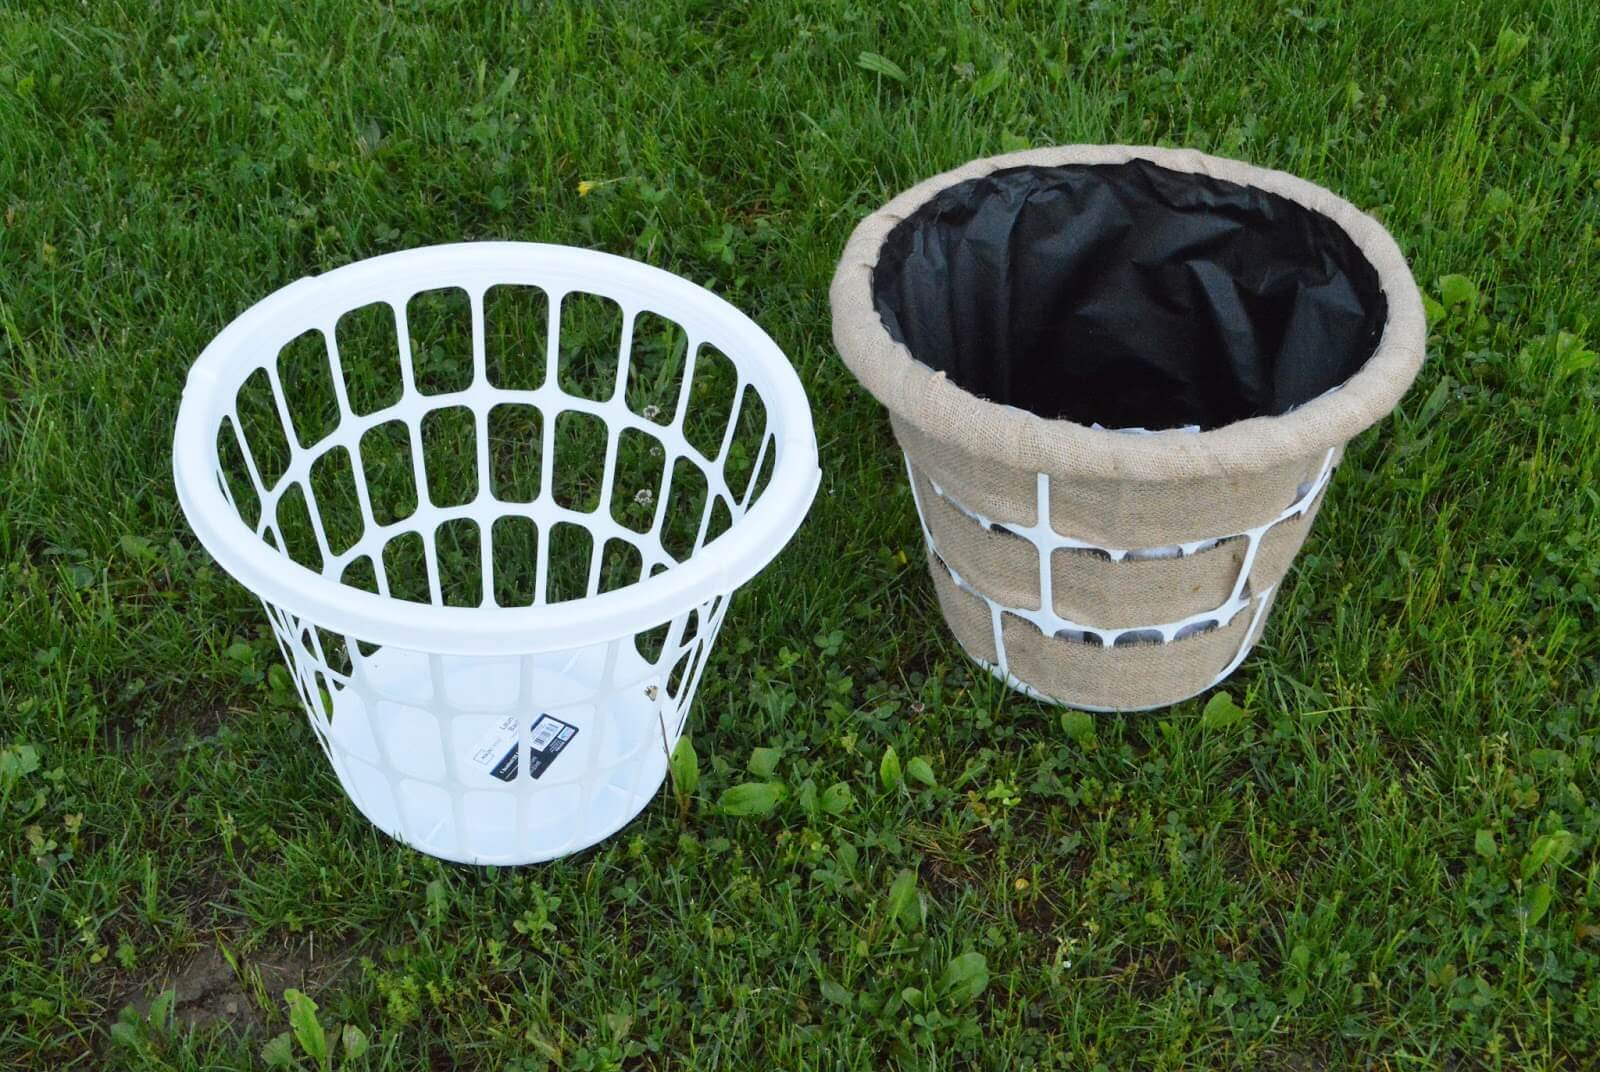 A broekn laundry basket can make a great planter